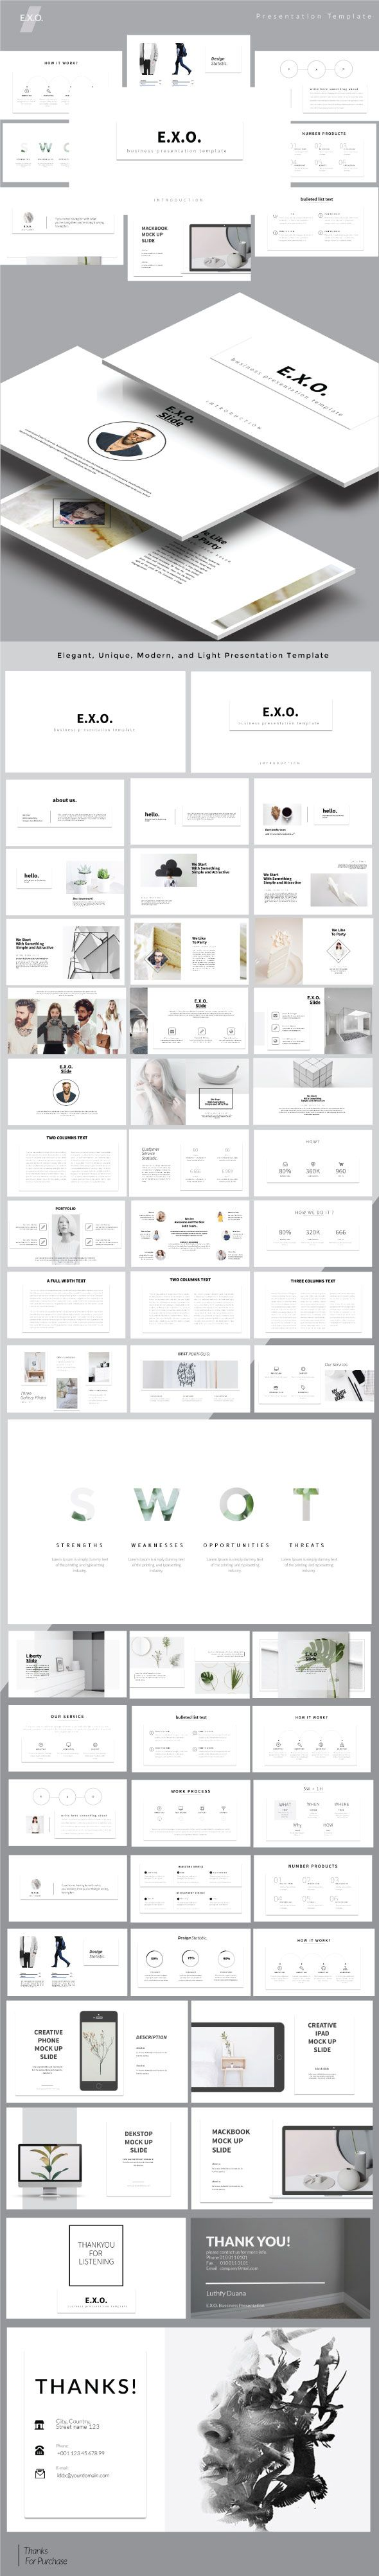 E.x.o. Multipurpose Powerpoint Template